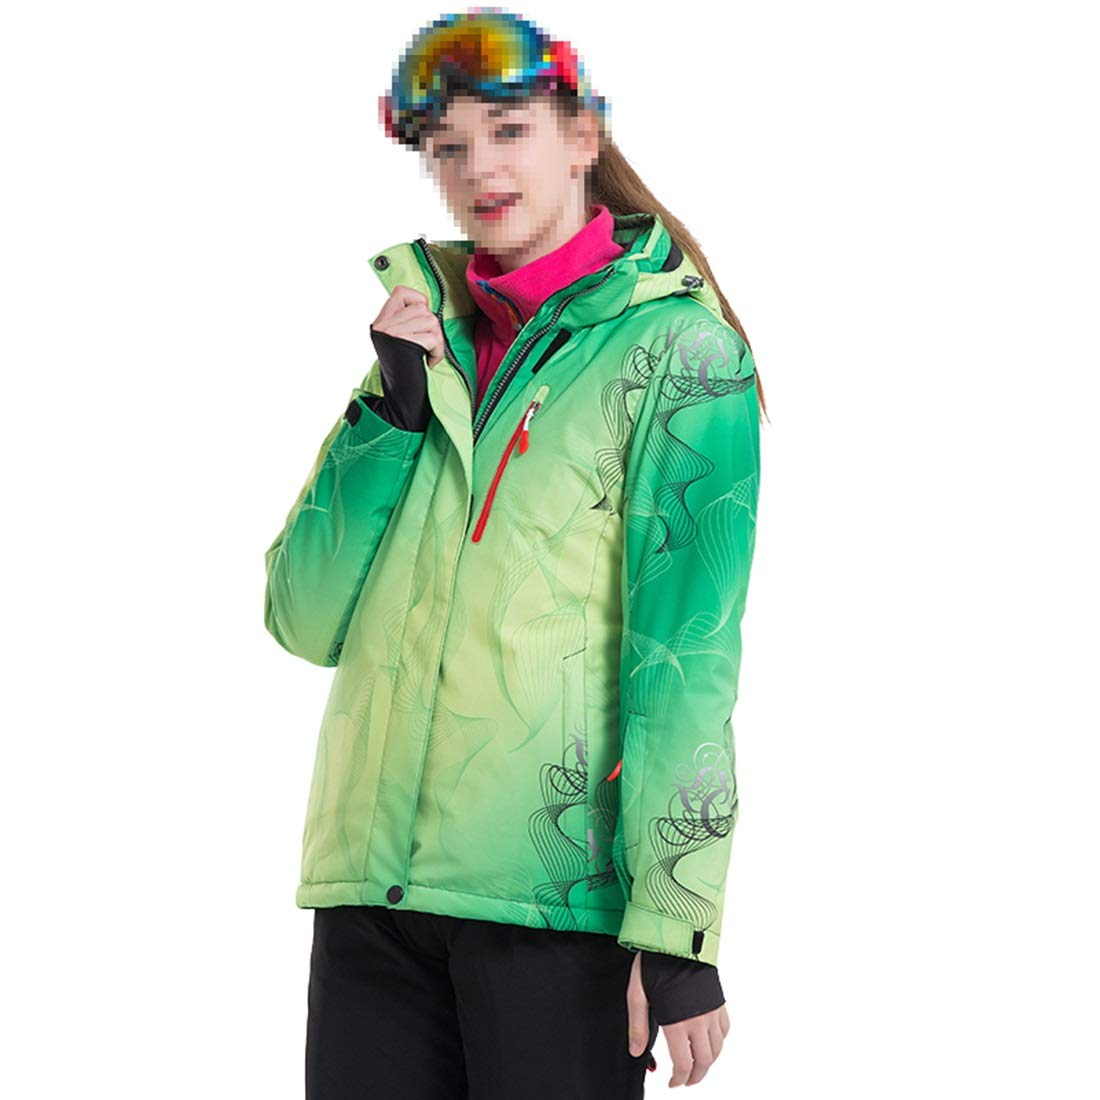 Green XIAMEND Breathable Women's Ski Suit Waterproof Snowboard Ski Jacket (color   White, Size   M)